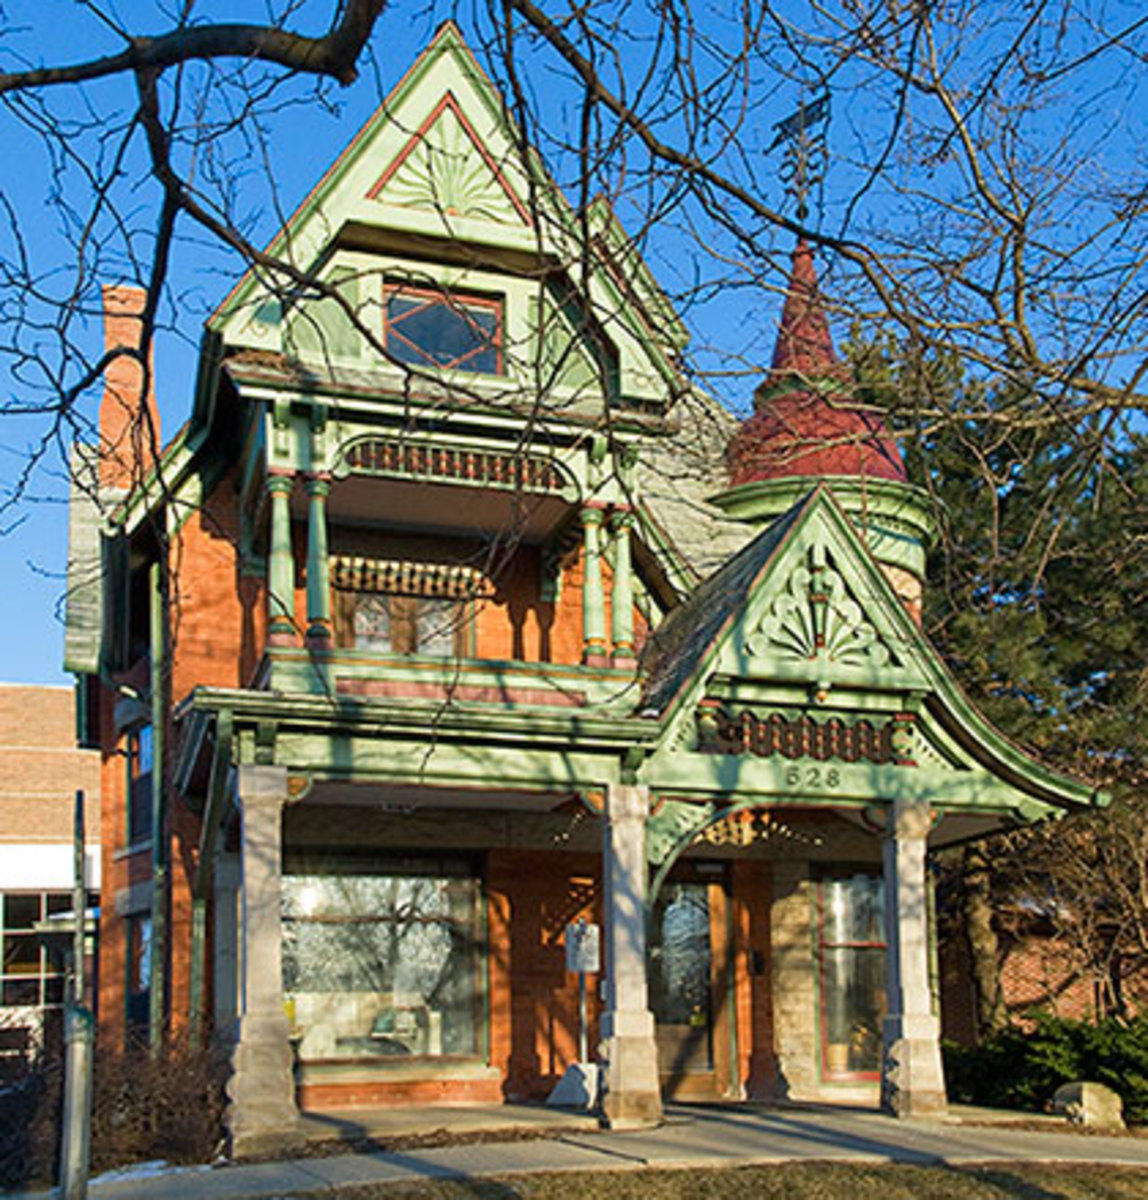 Rogers-Carrier House on Capitol Avenue, done in Queen Anne style